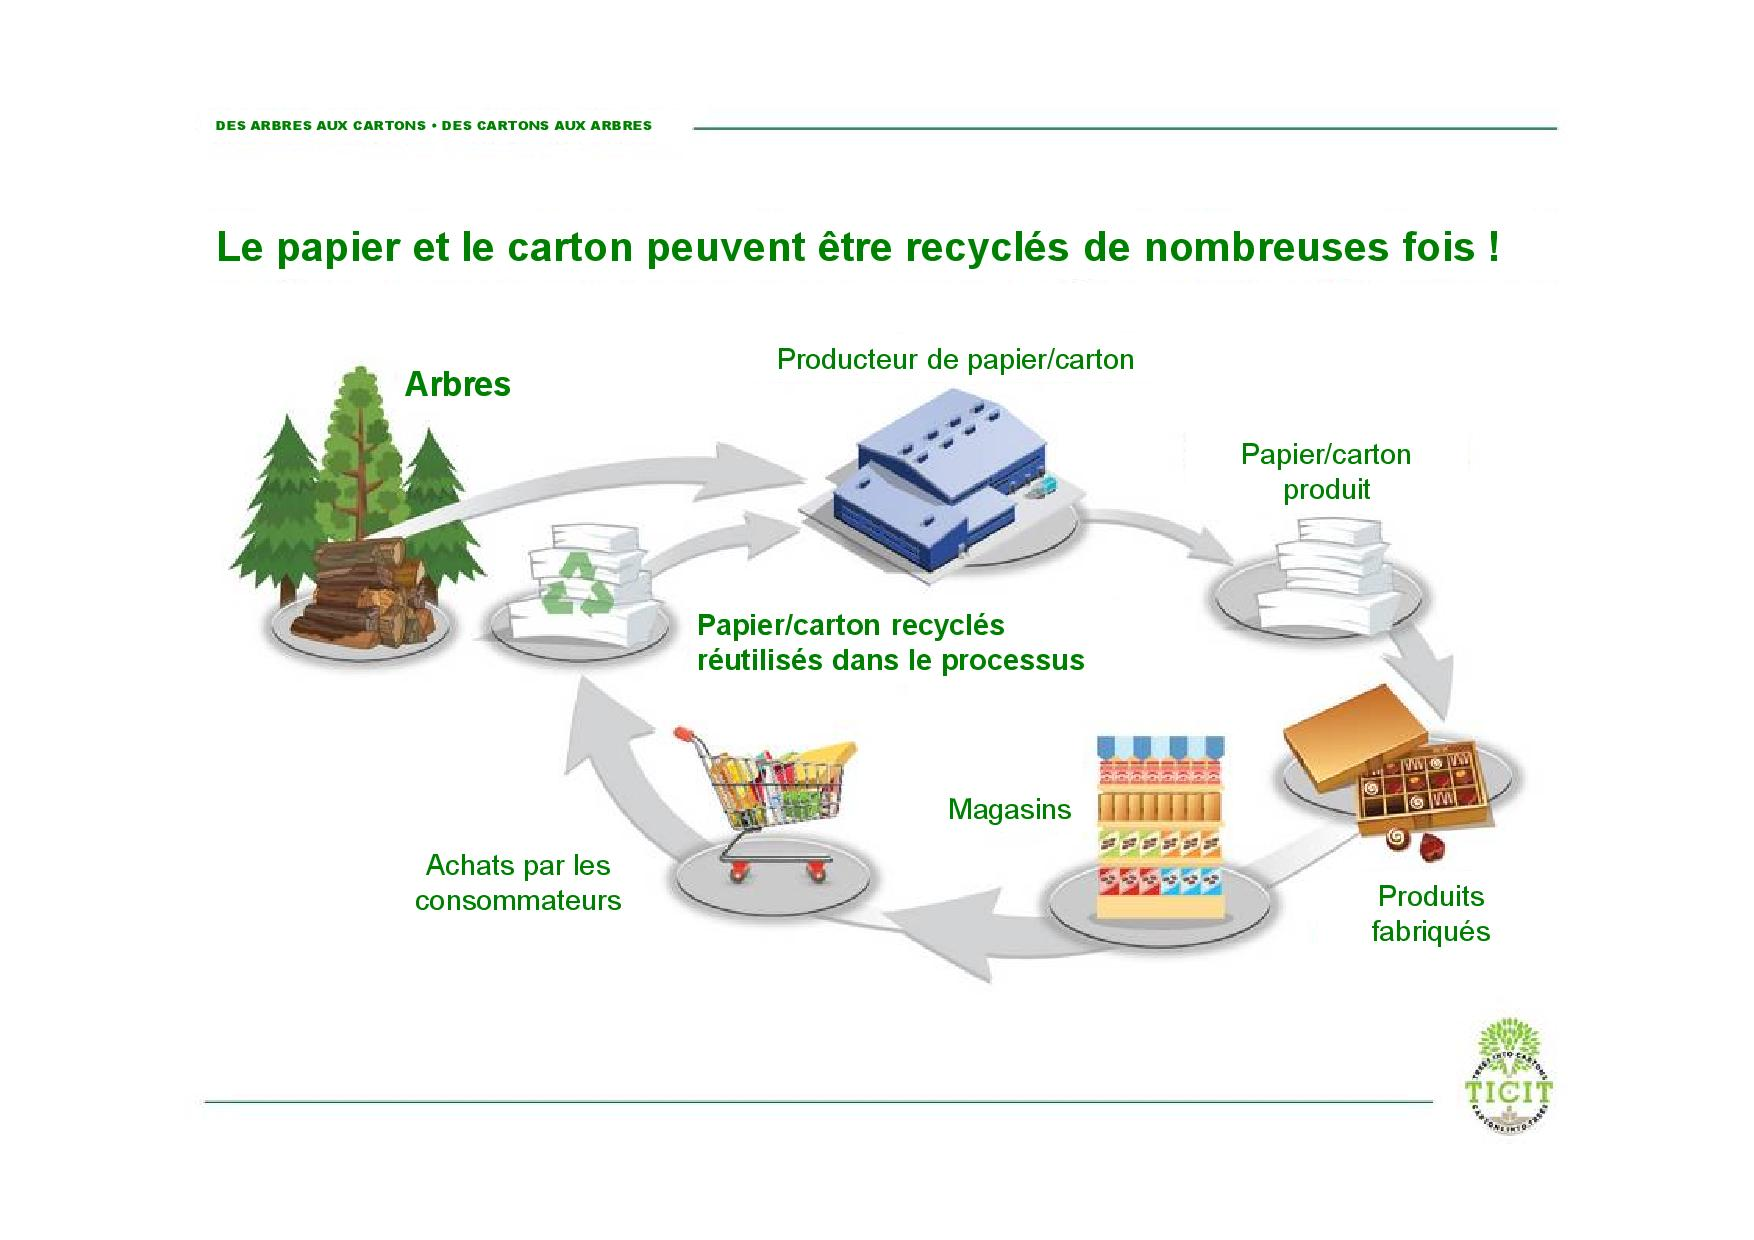 Achat Cartons Carton Lifecycle Chart Fr Page 001 Pro Carton